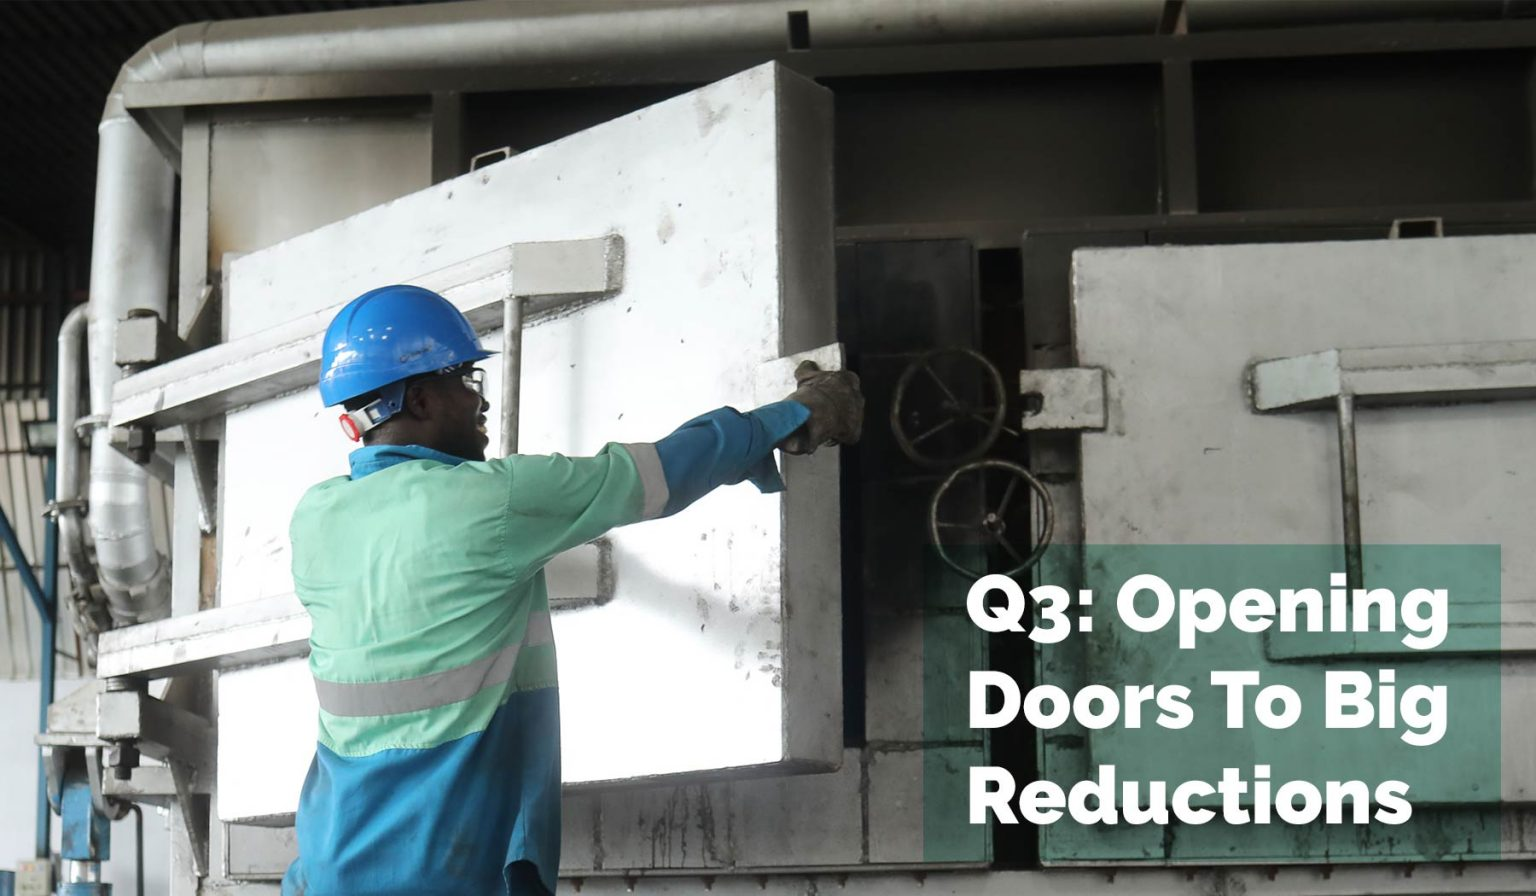 Opening Doors To Big Reductions – Q3, 2020 Results Show